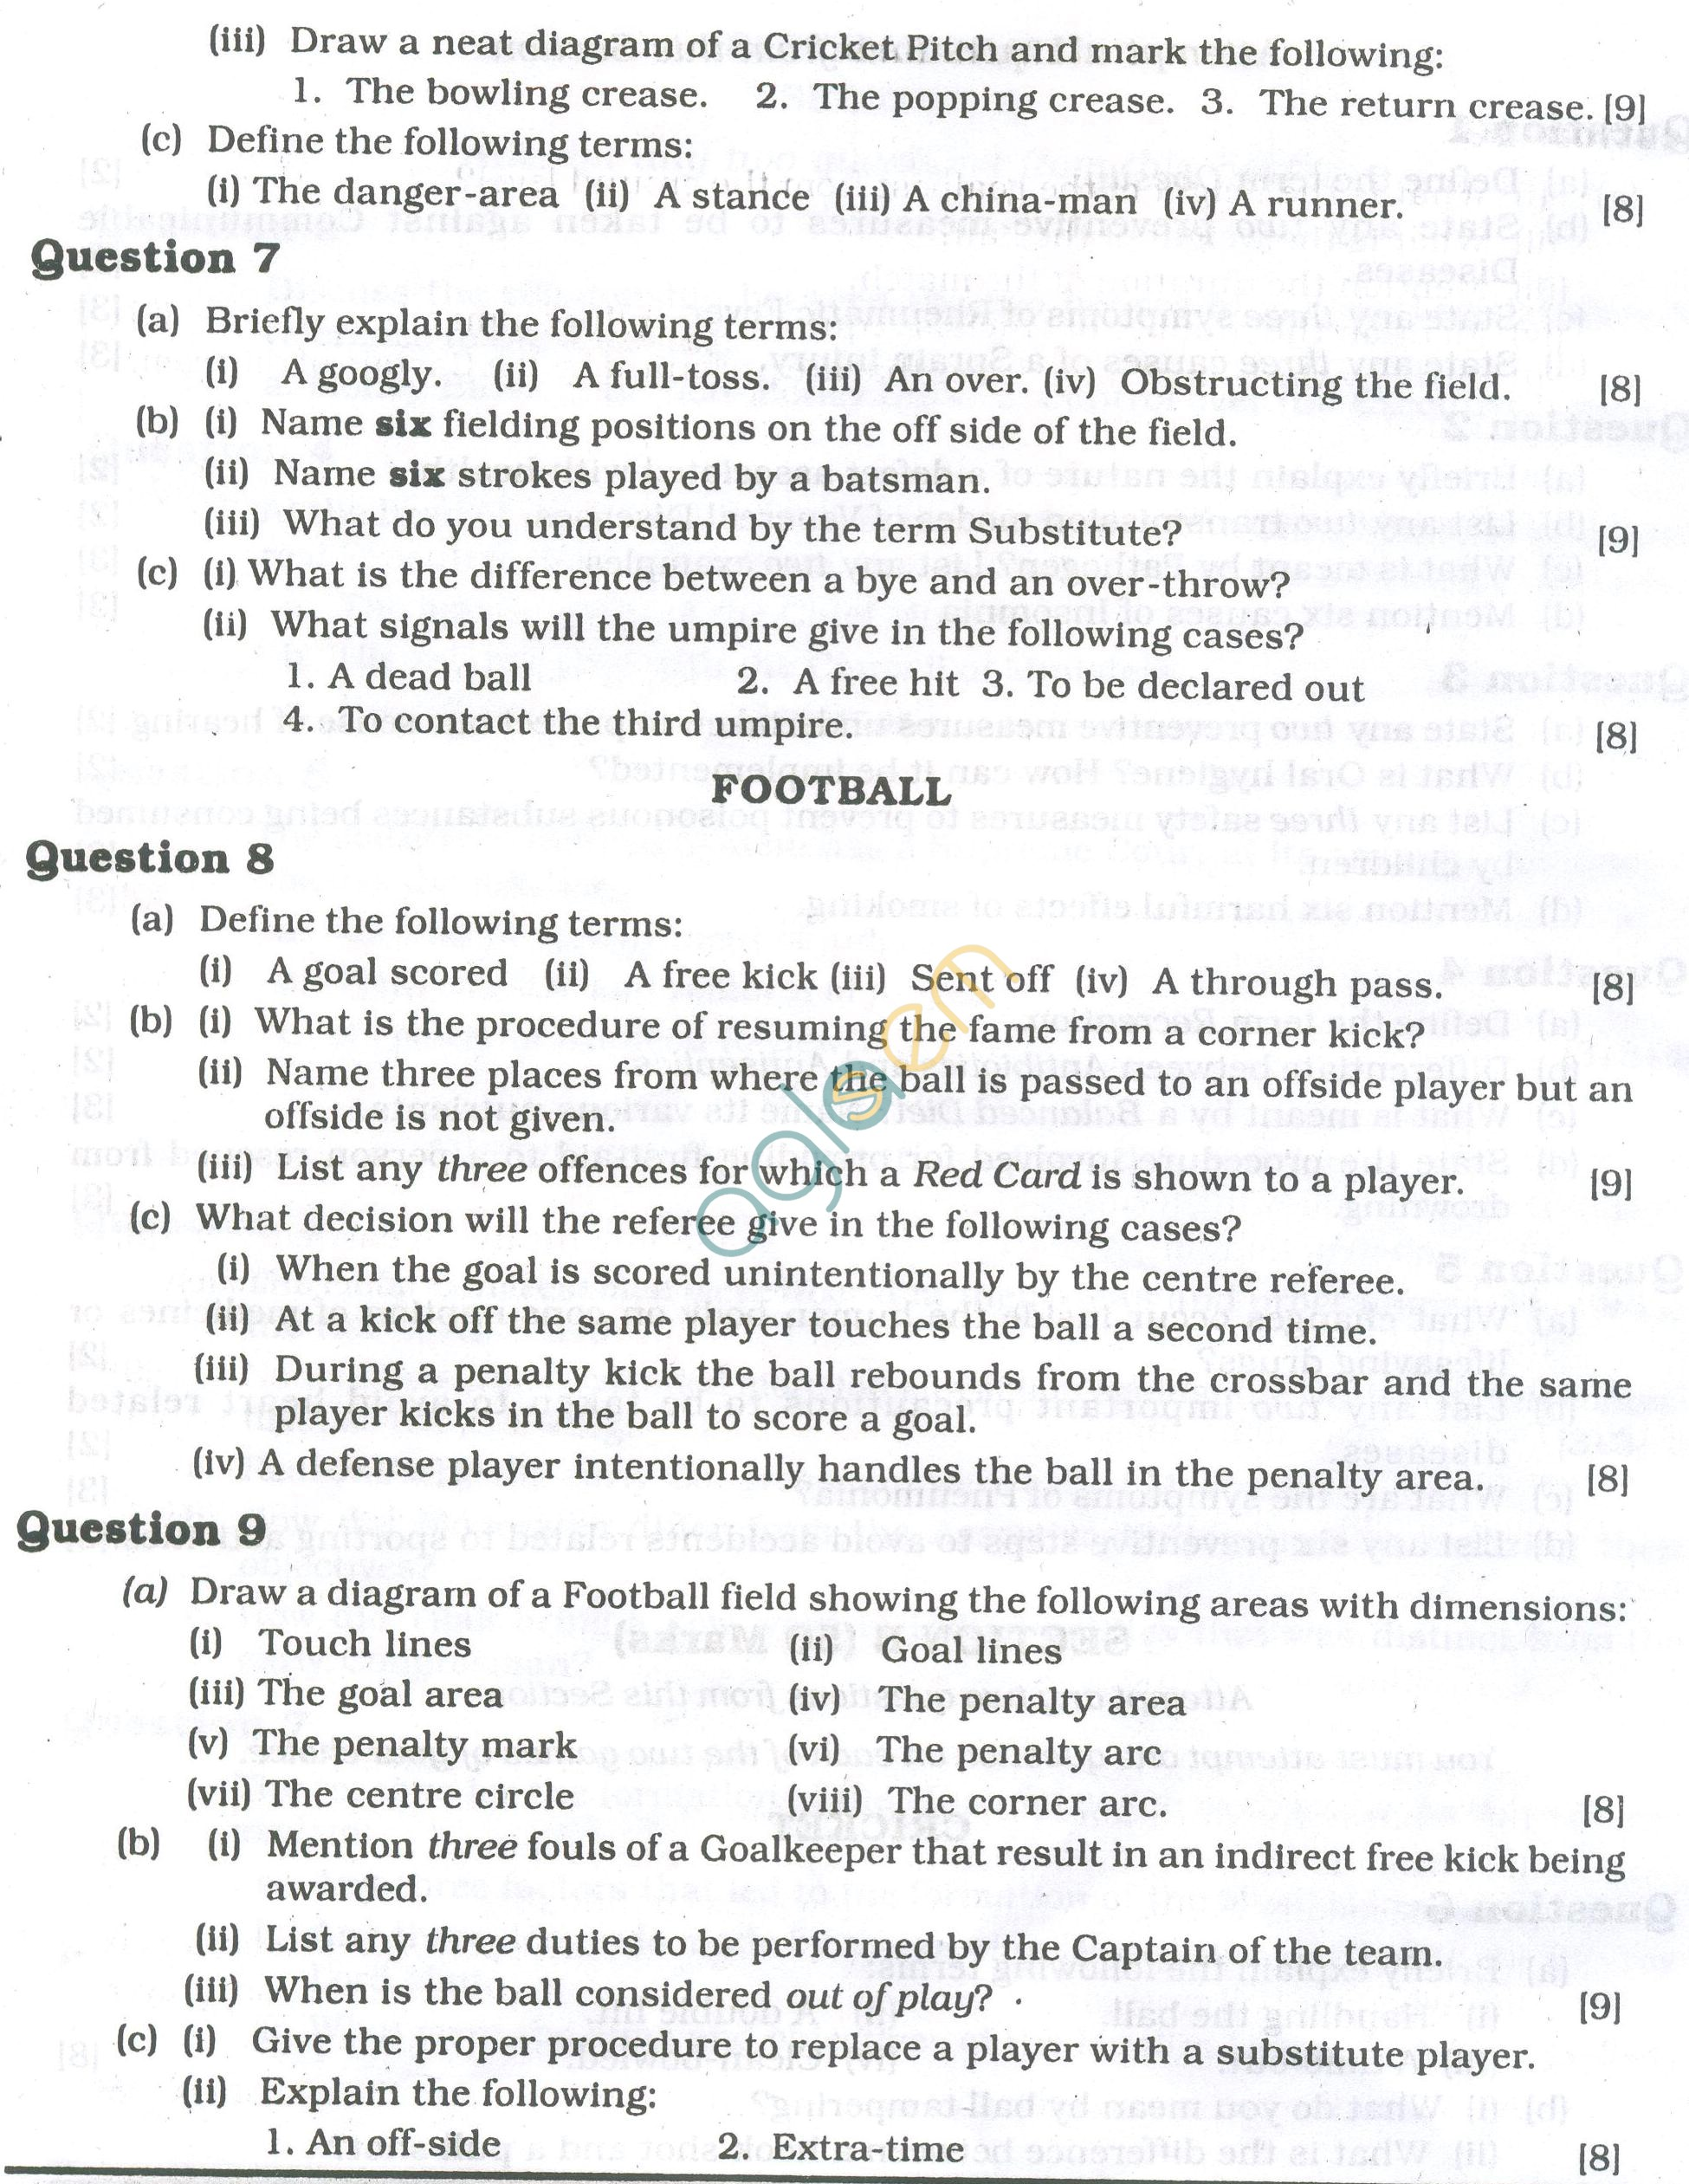 Icse question papers 2013 for class 10 physical education icse question papers 2013 for class 10 physical education malvernweather Image collections